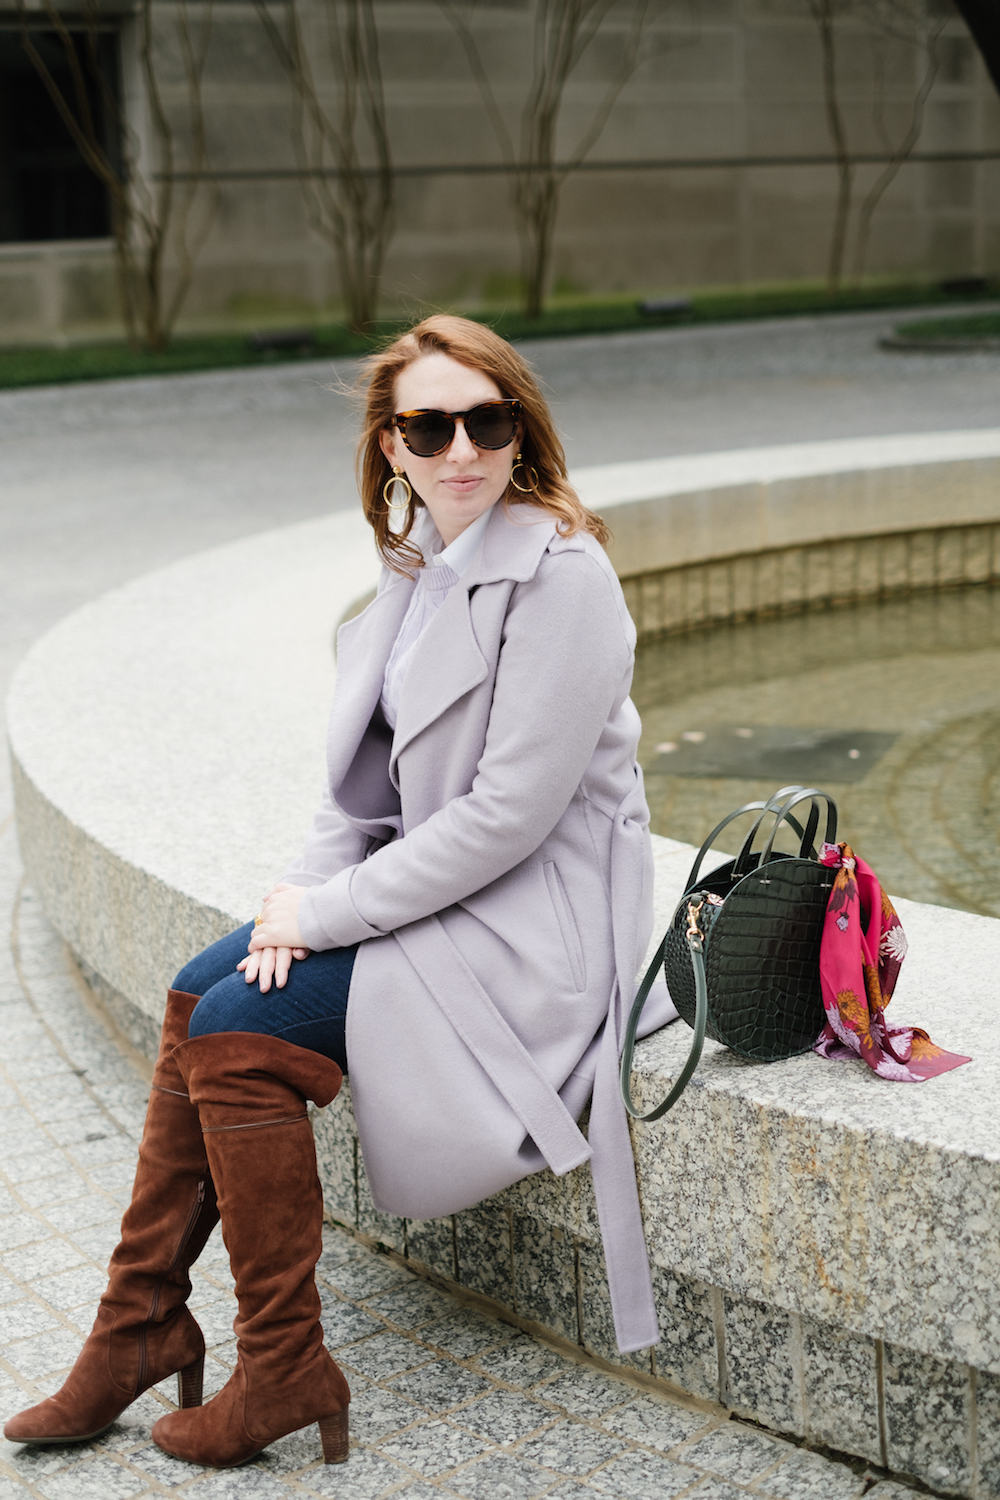 Comfy Over the Knee Boots for Walking | Best OTK Boots for Winter | Comfiest Jeans for Girls with Curves | Winter Outfit Idea